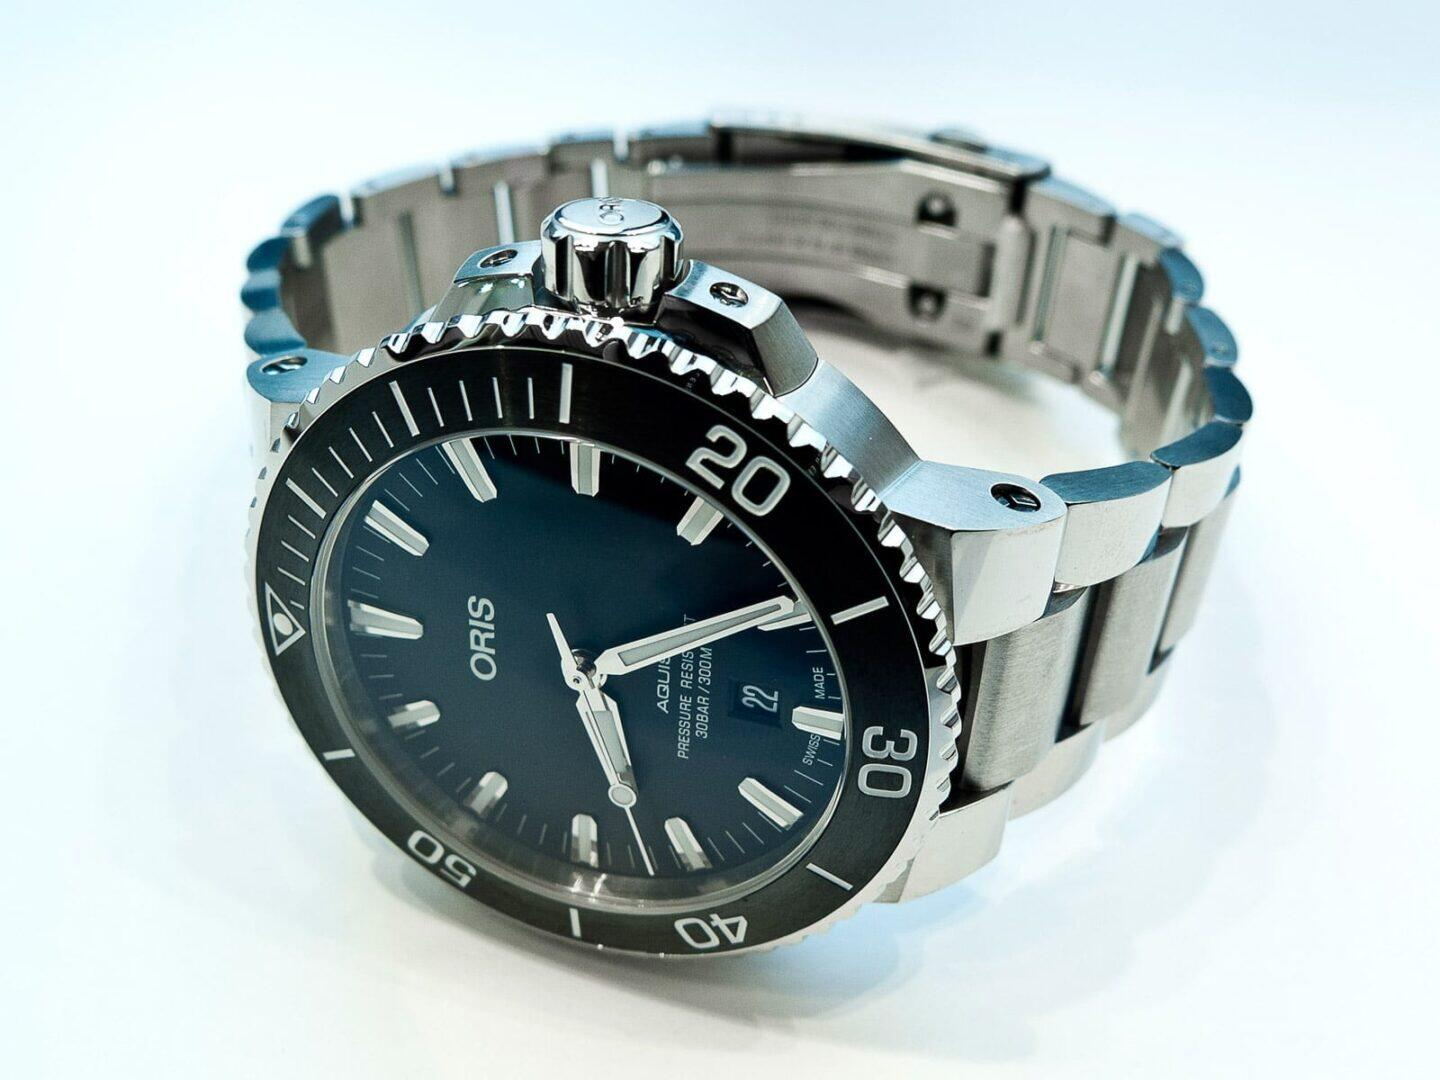 Oris Aquis, 43.50 mm, 1.713 inches, Stainless steel